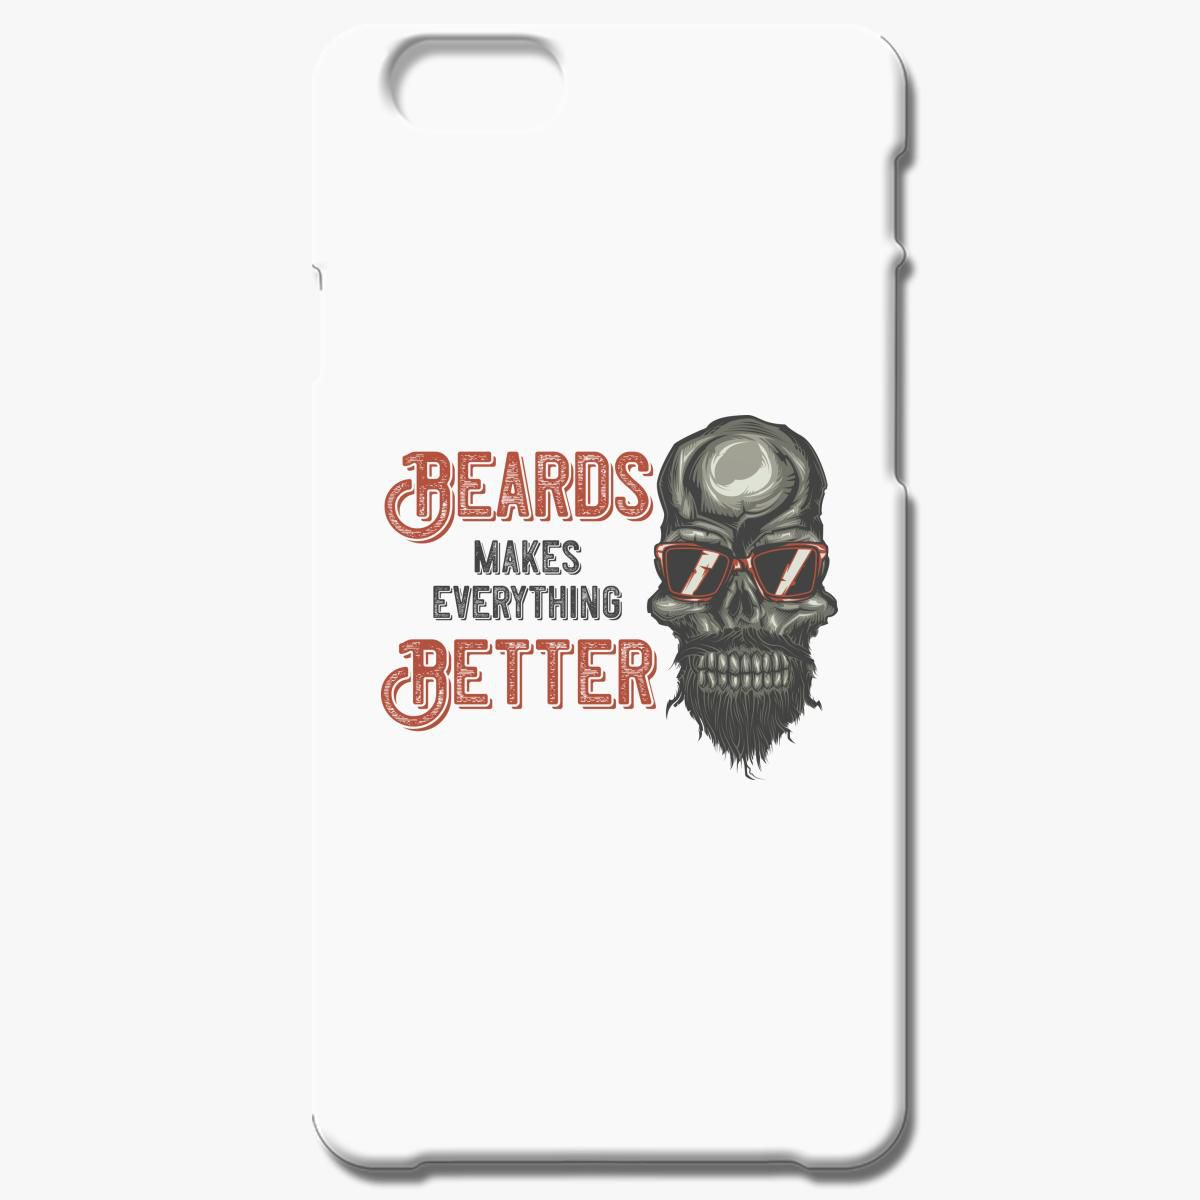 Beards Makes Everything Better T Shirt Iphone 6 6s Plus